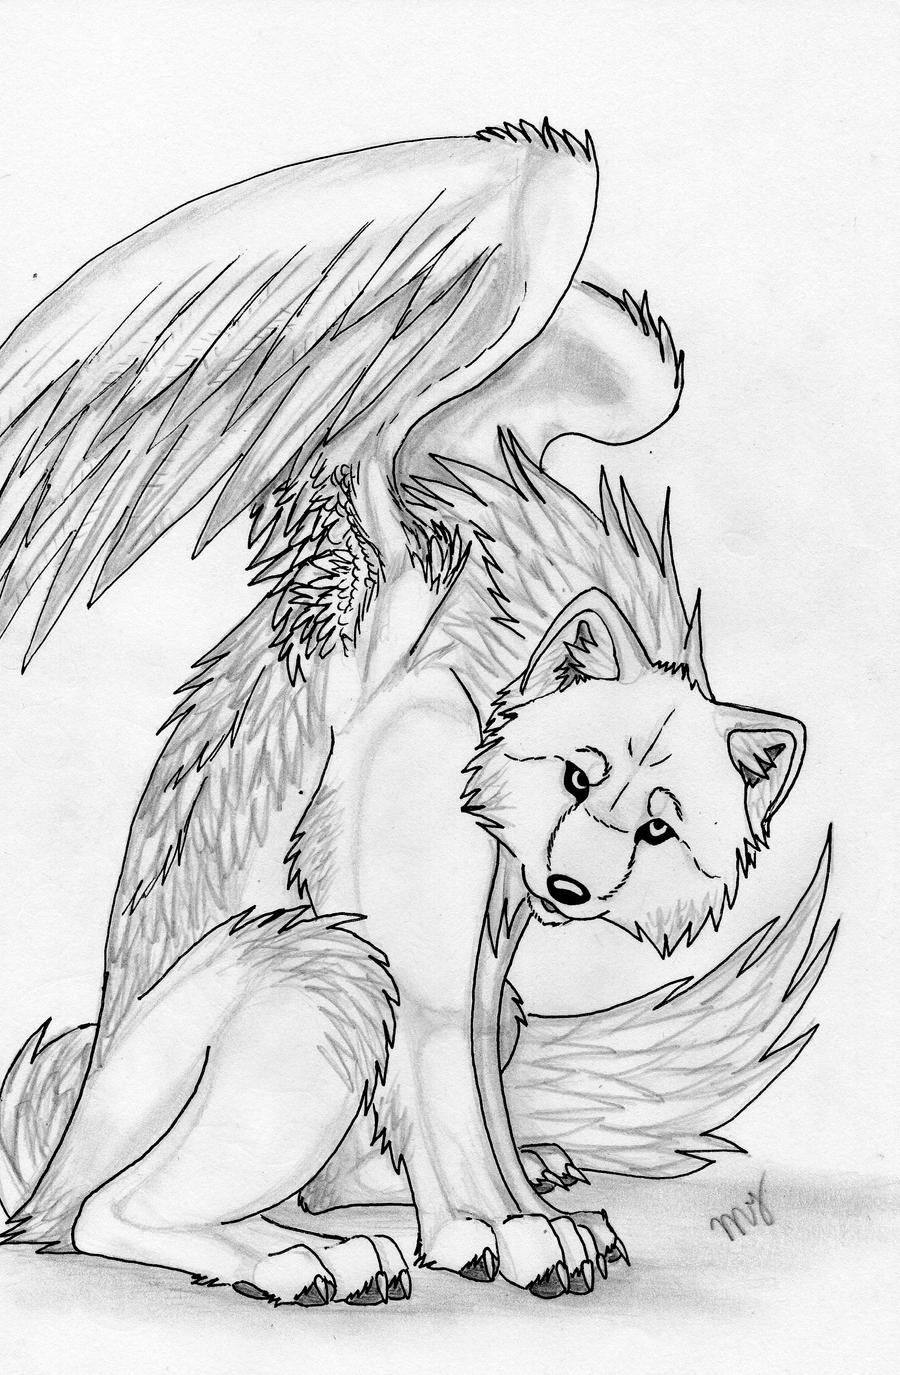 worksheet Angle Drawing the angle wolf by suenta deathgod on deviantart deathgod